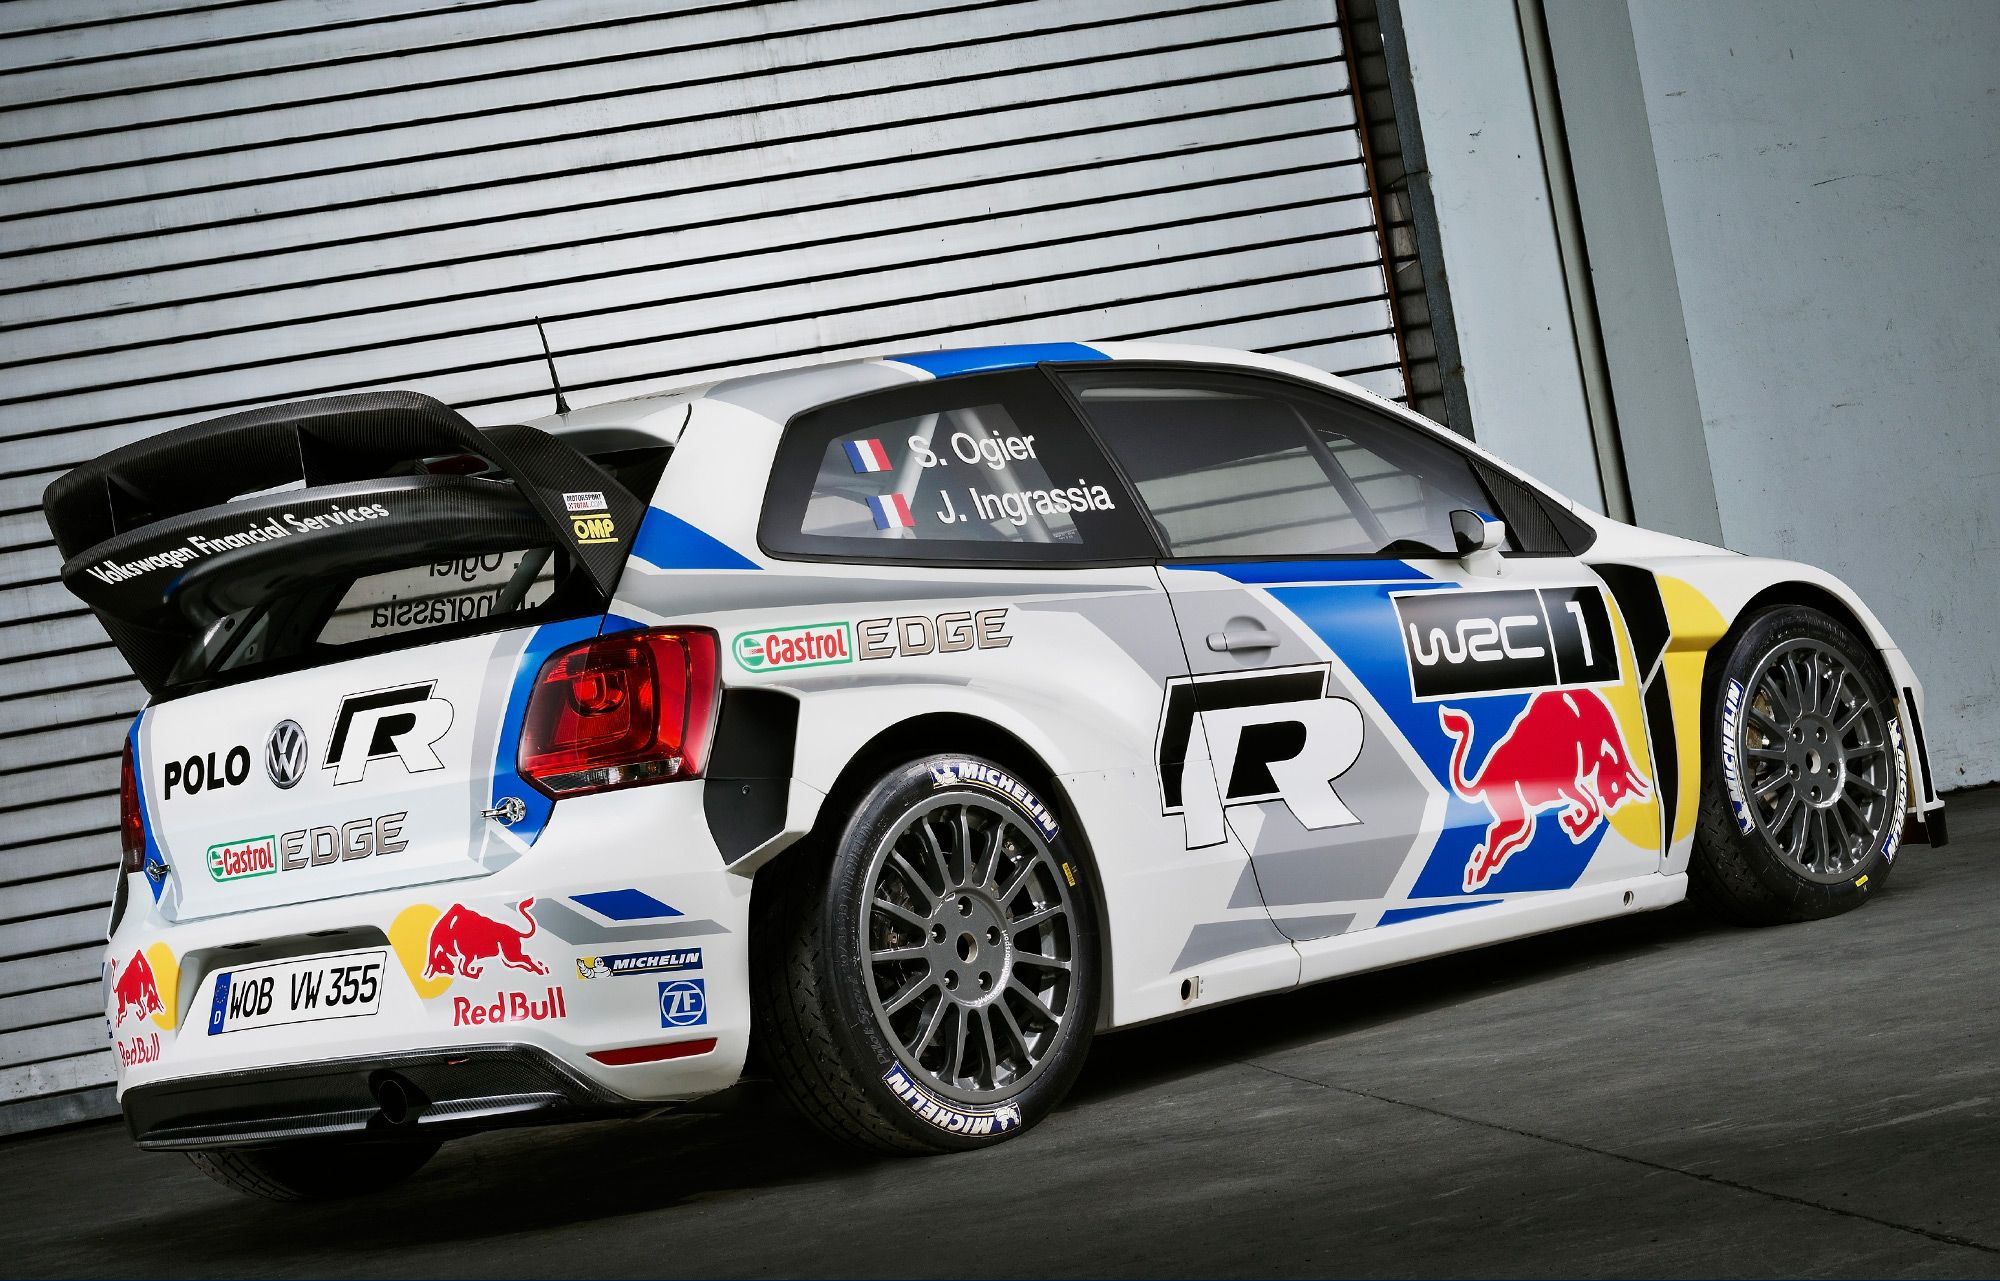 Vw Motorsport Wrc Polo R Is Ready For 2014 Season Check Its